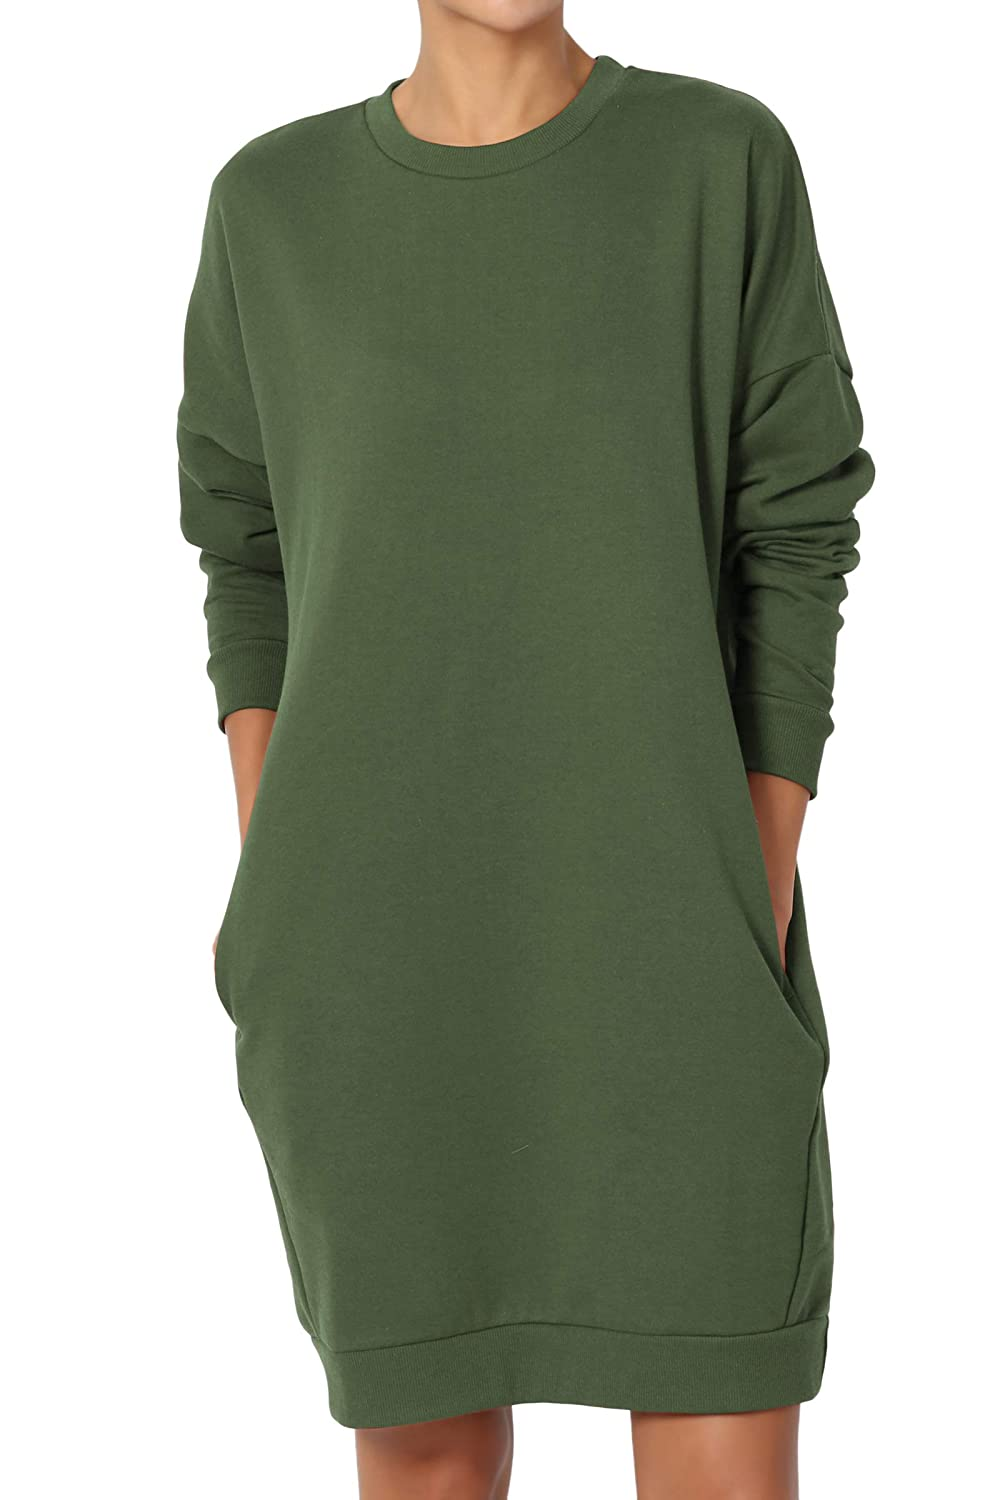 Themogan Casual Oversized Crew V Neck Sweatshirts Loose Fit Pullover